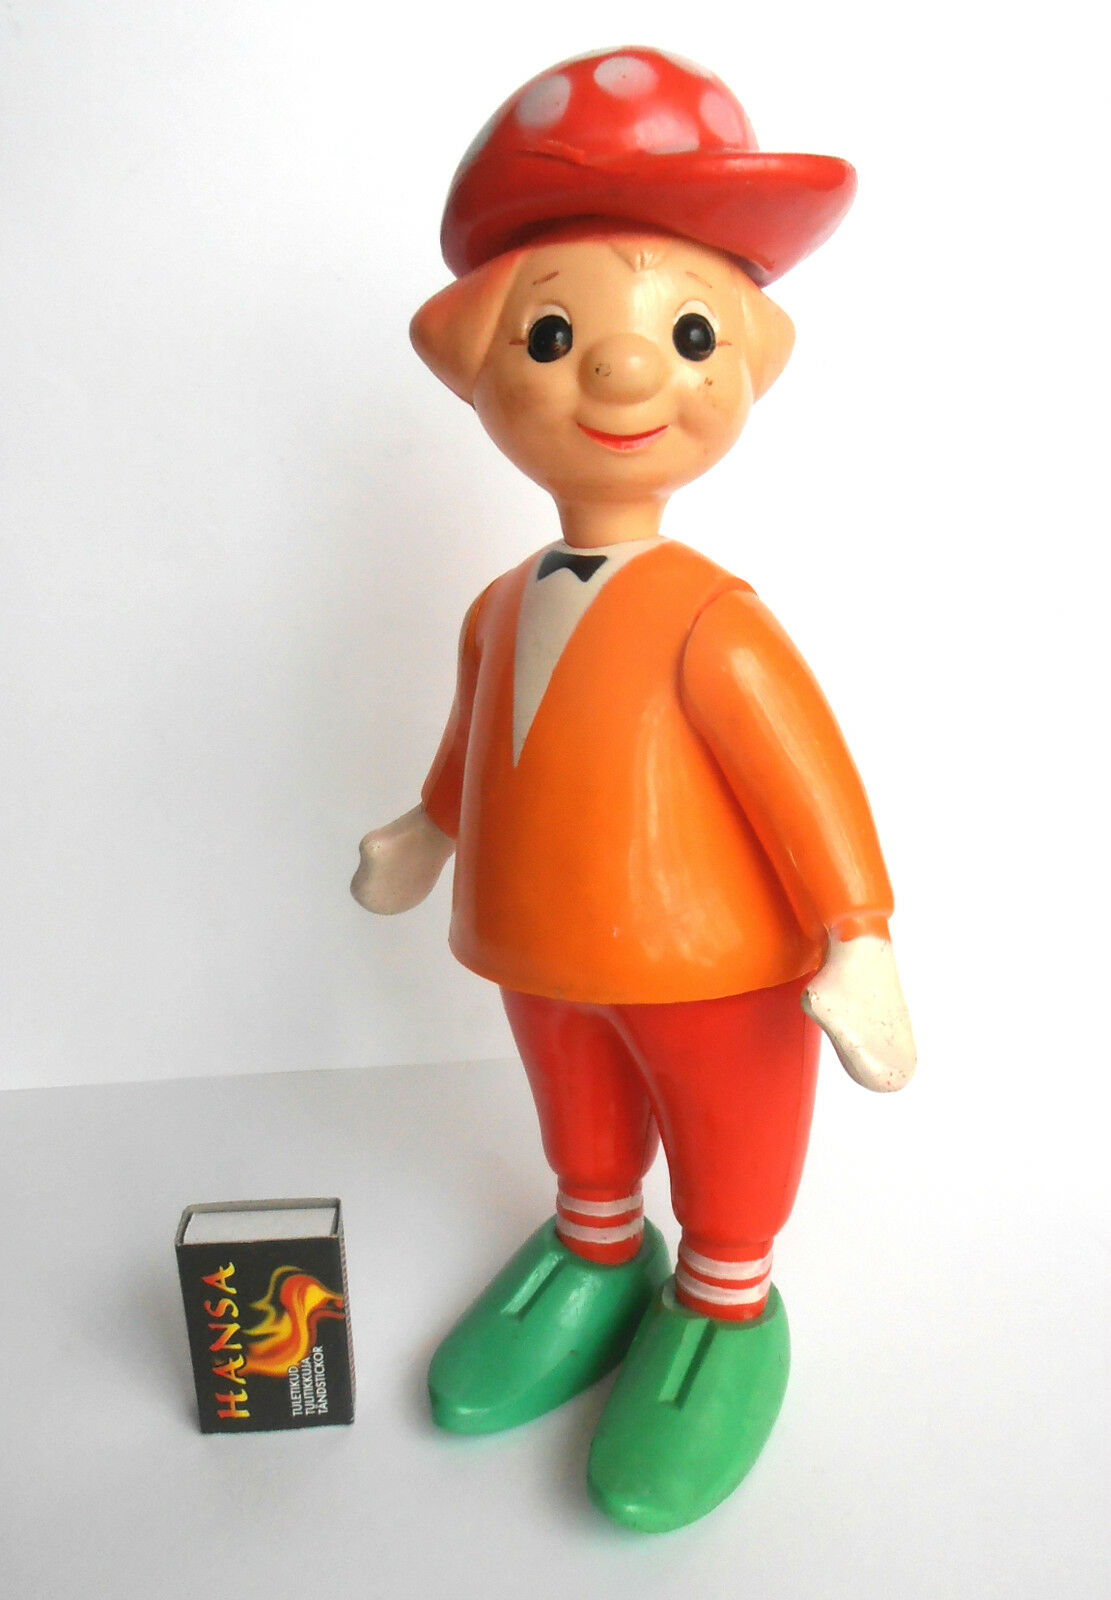 1950s USSR Great Russian Clown Circus Actor Early OLEG POPOV Celluloid Doll Rare